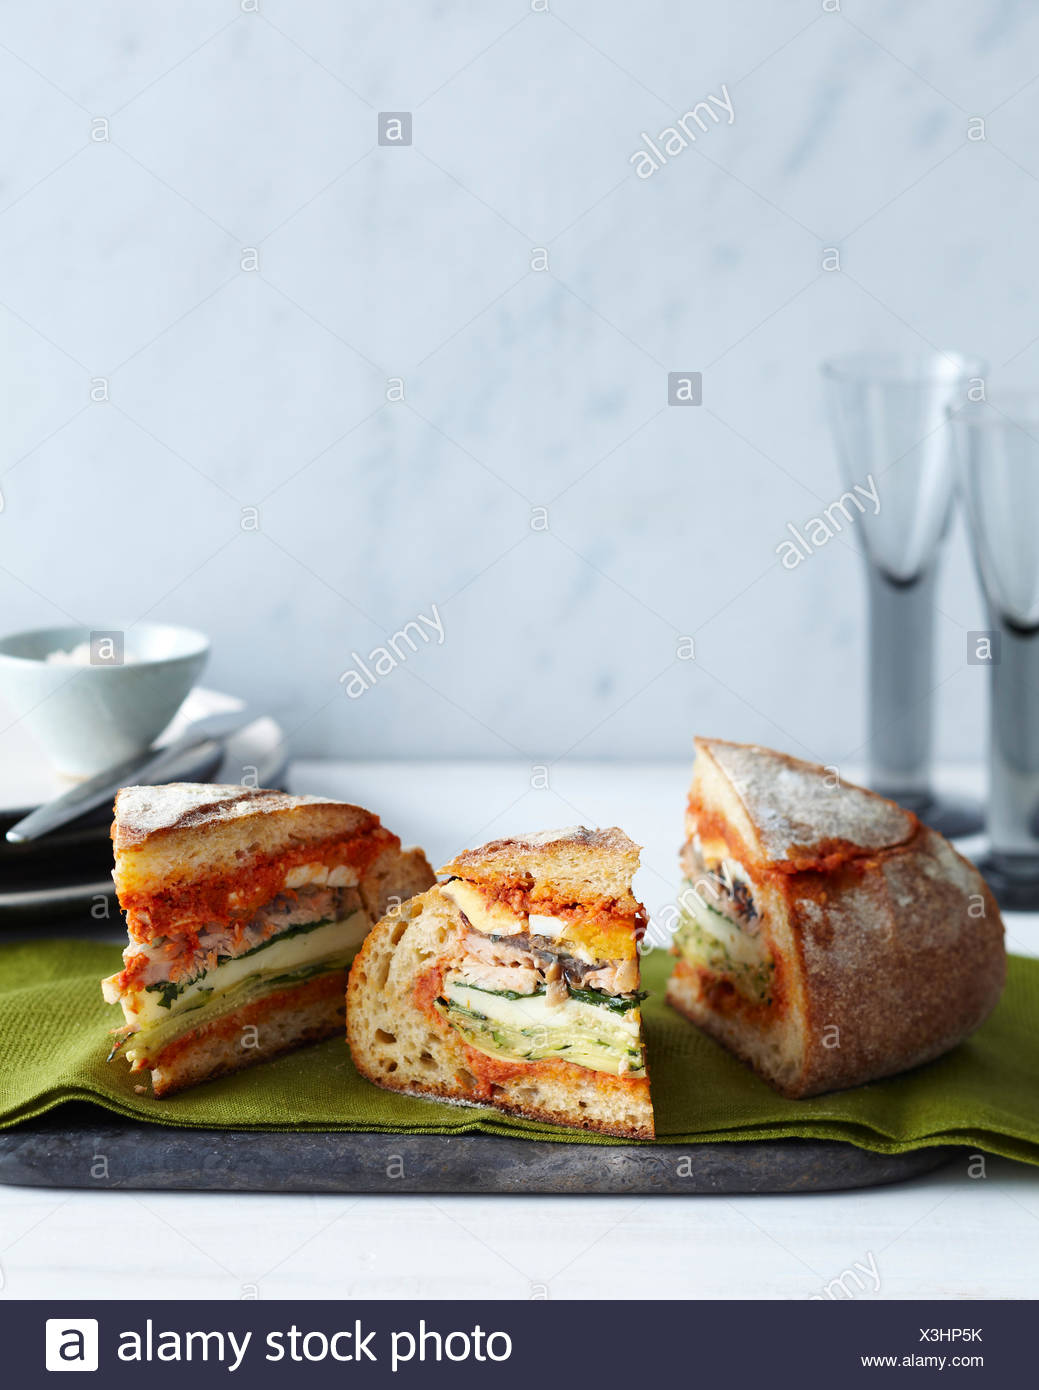 Bagnato Stock Photos & Bagnato Stock Images - Alamy